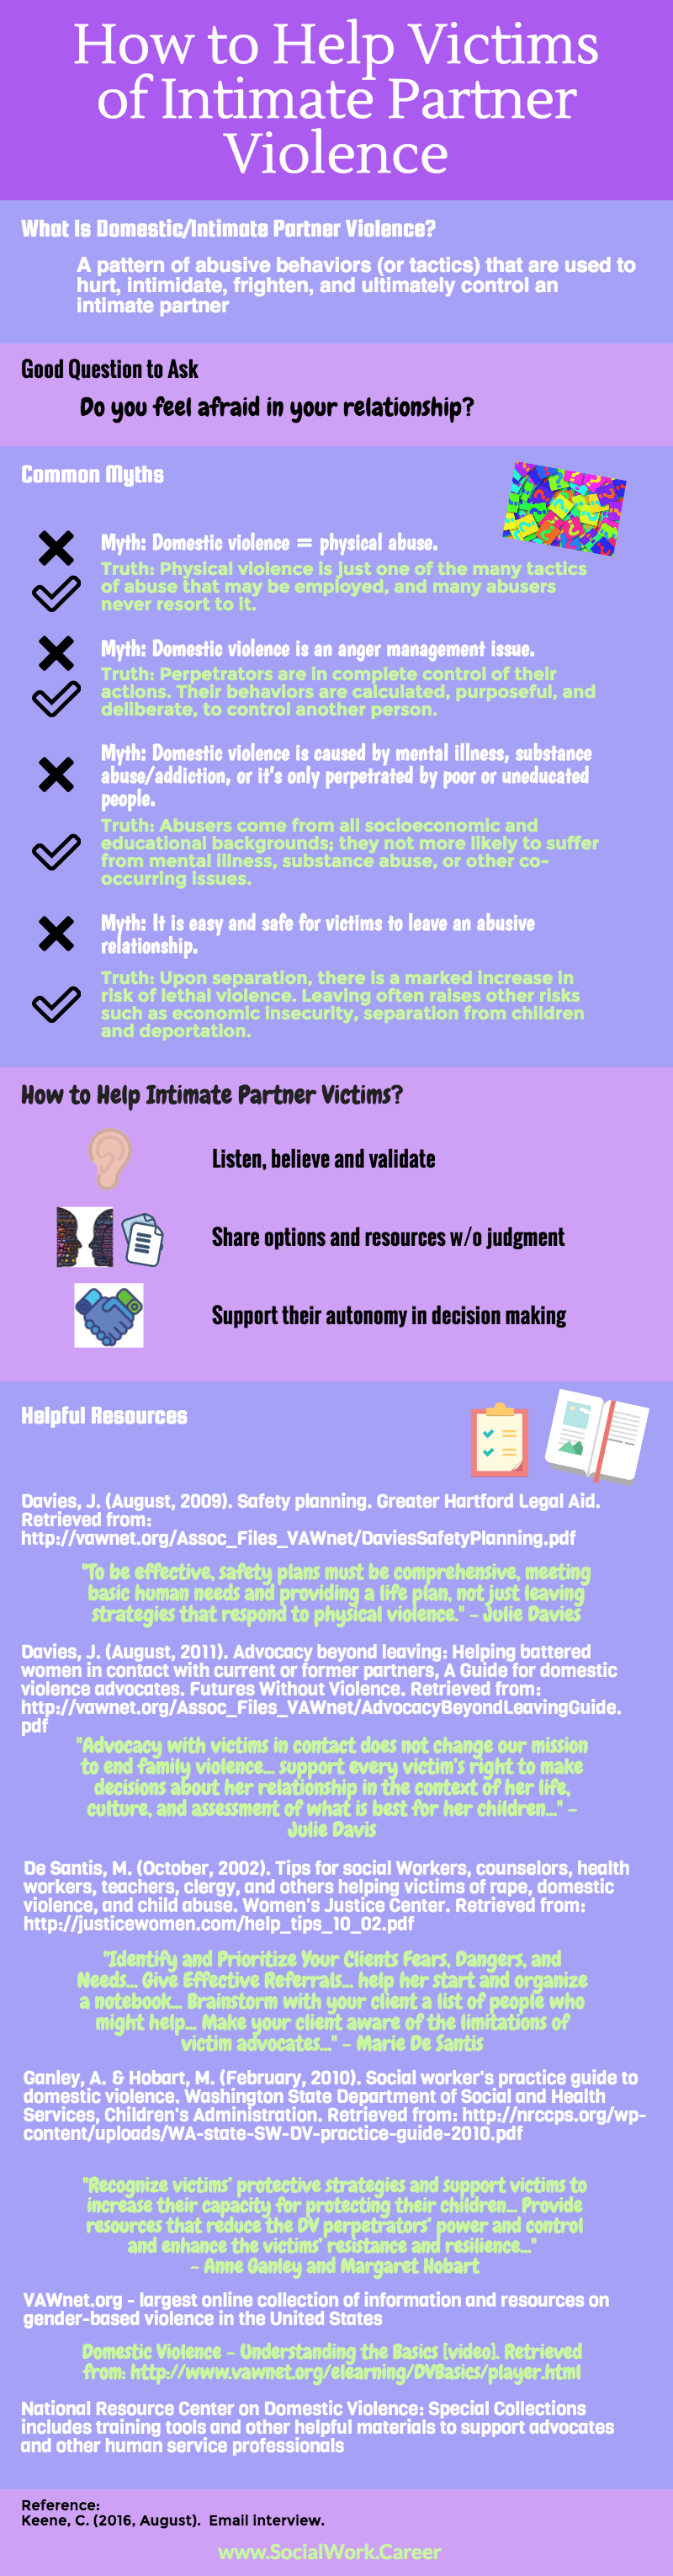 How to Help Victims of Intimate Partner/Domestic Violence < interview with Casey Keene from the National Resource Center on Domestic Violence